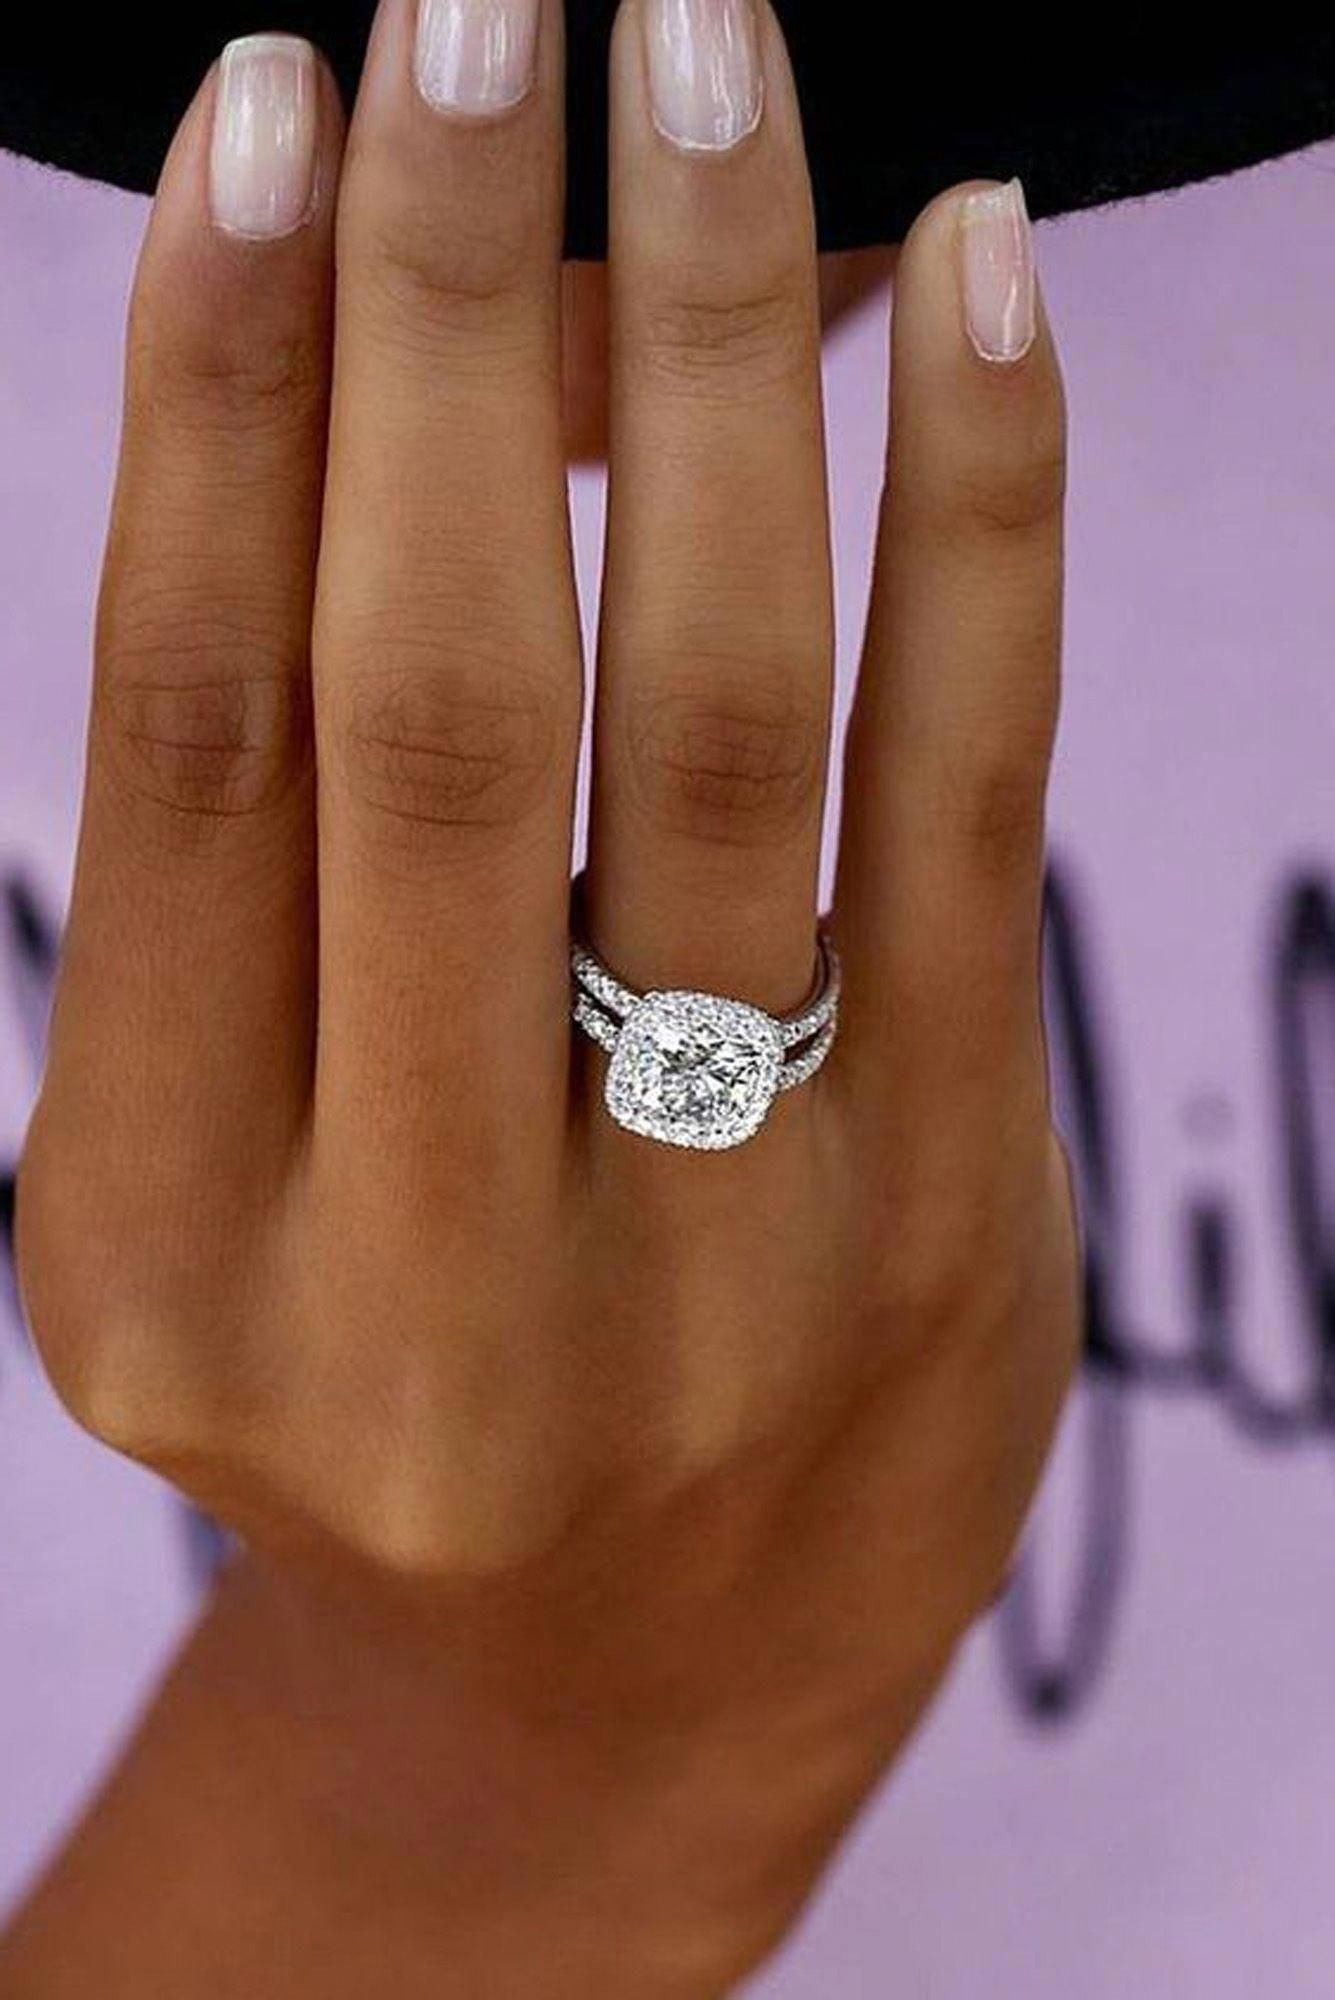 Hacks For Beautiful Wedding Rings Brides Should Destress Their Skin Care Routine That Gives A Glowing Plexion Without Causing Irritation Or Breakouts: Wedding Rings In Skin At Websimilar.org